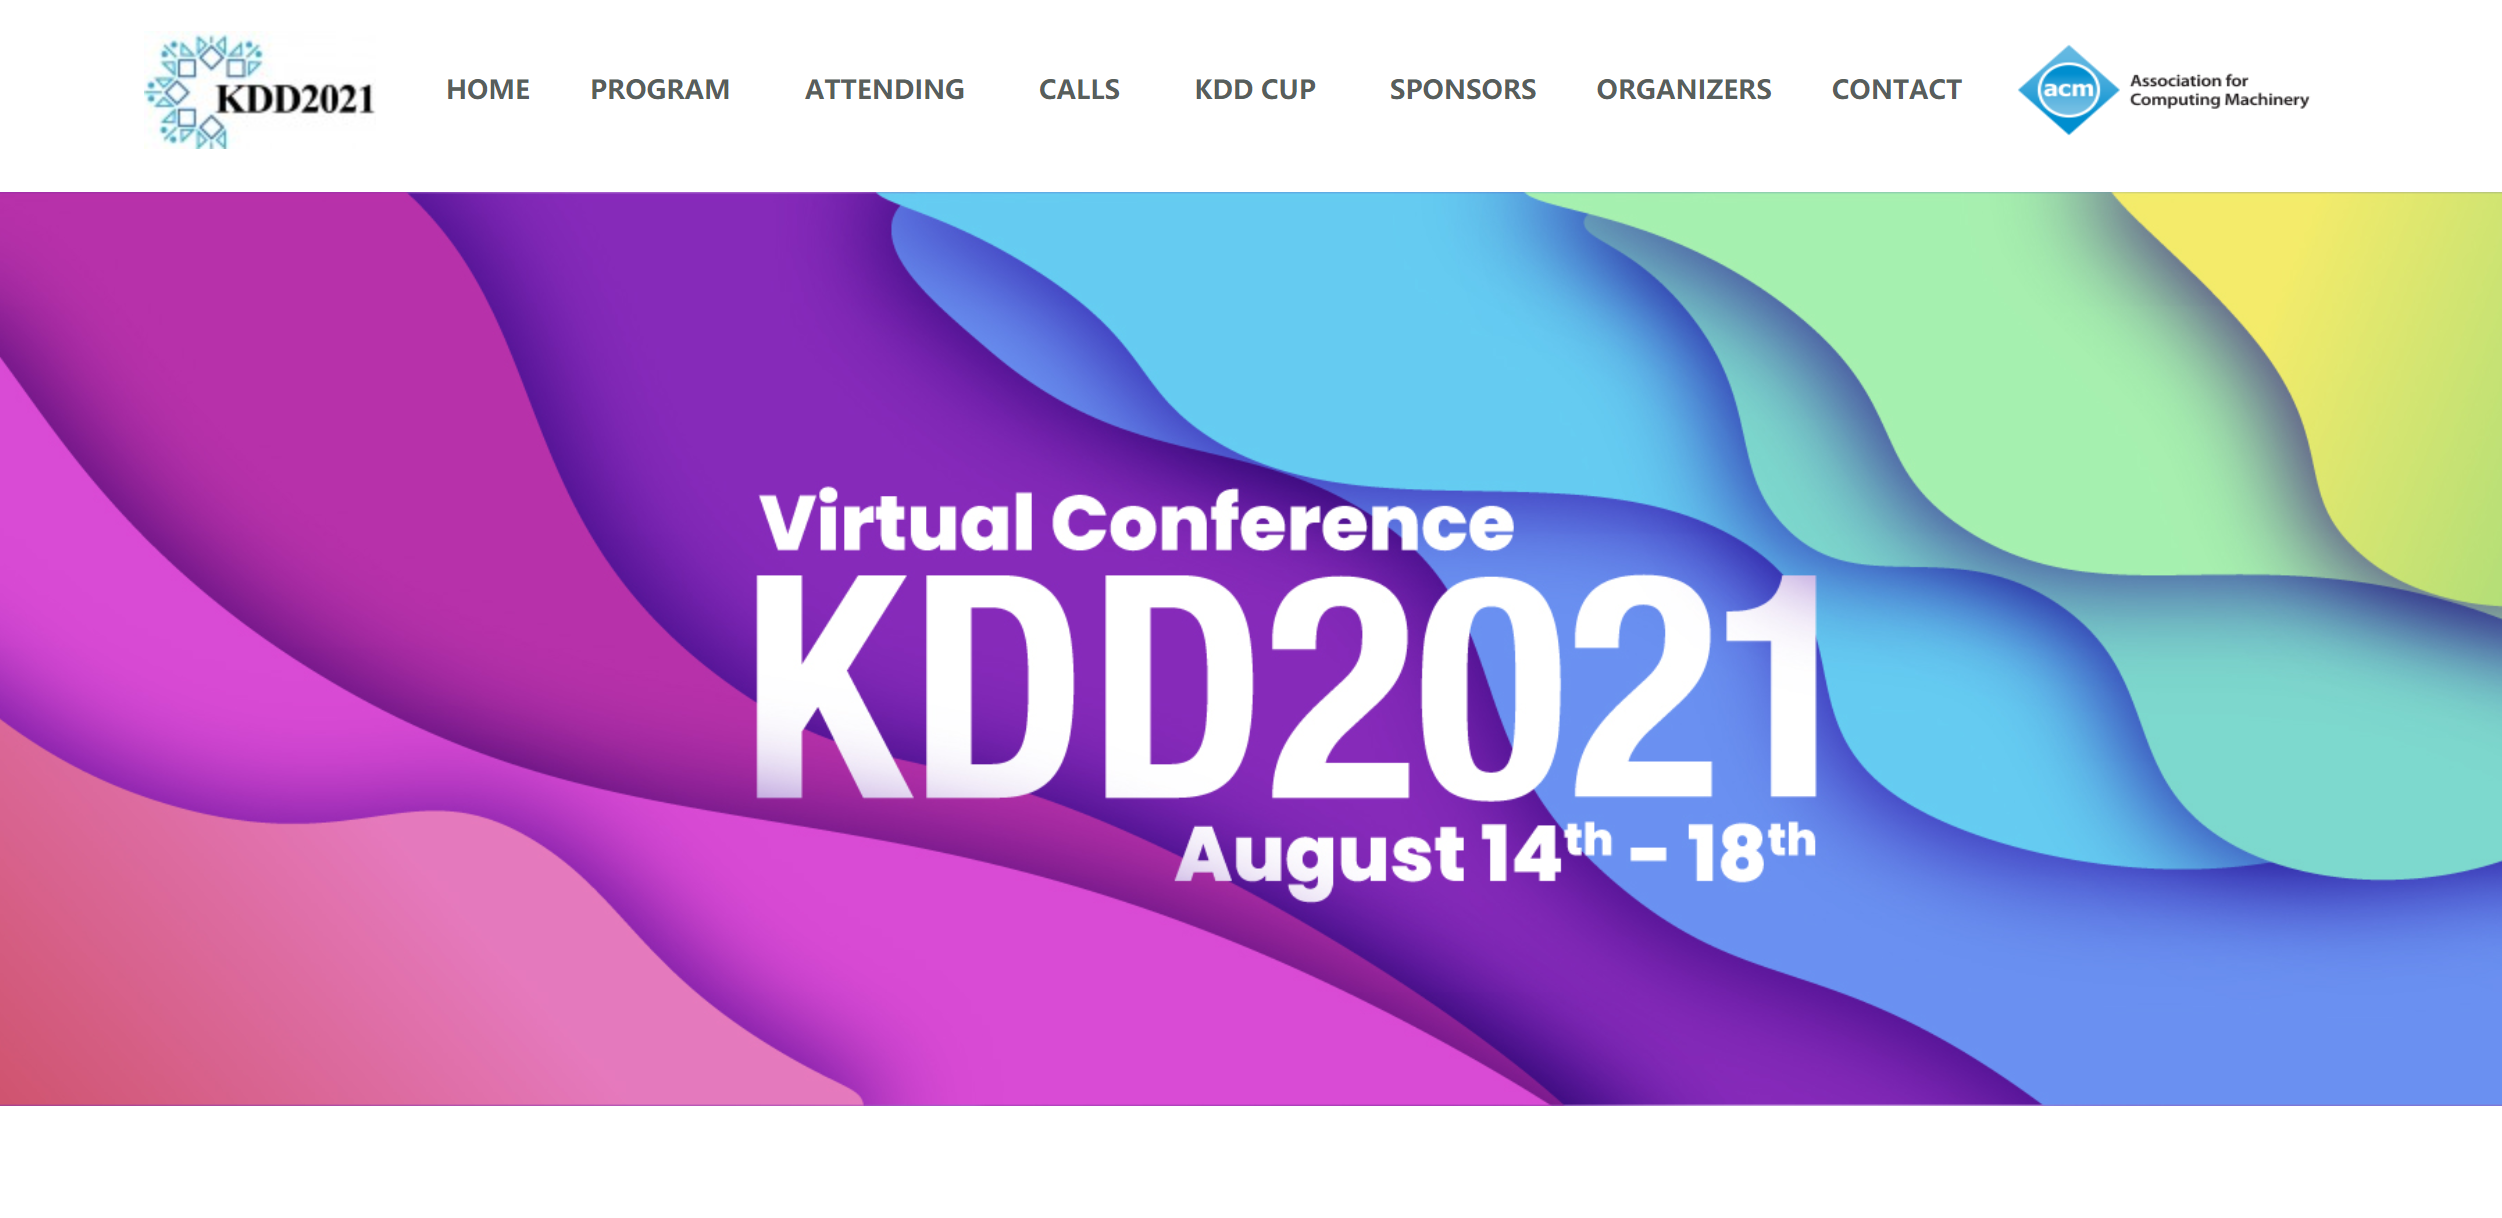 May: Congrats to Zhihan et al. on their KDD 2021 paper !